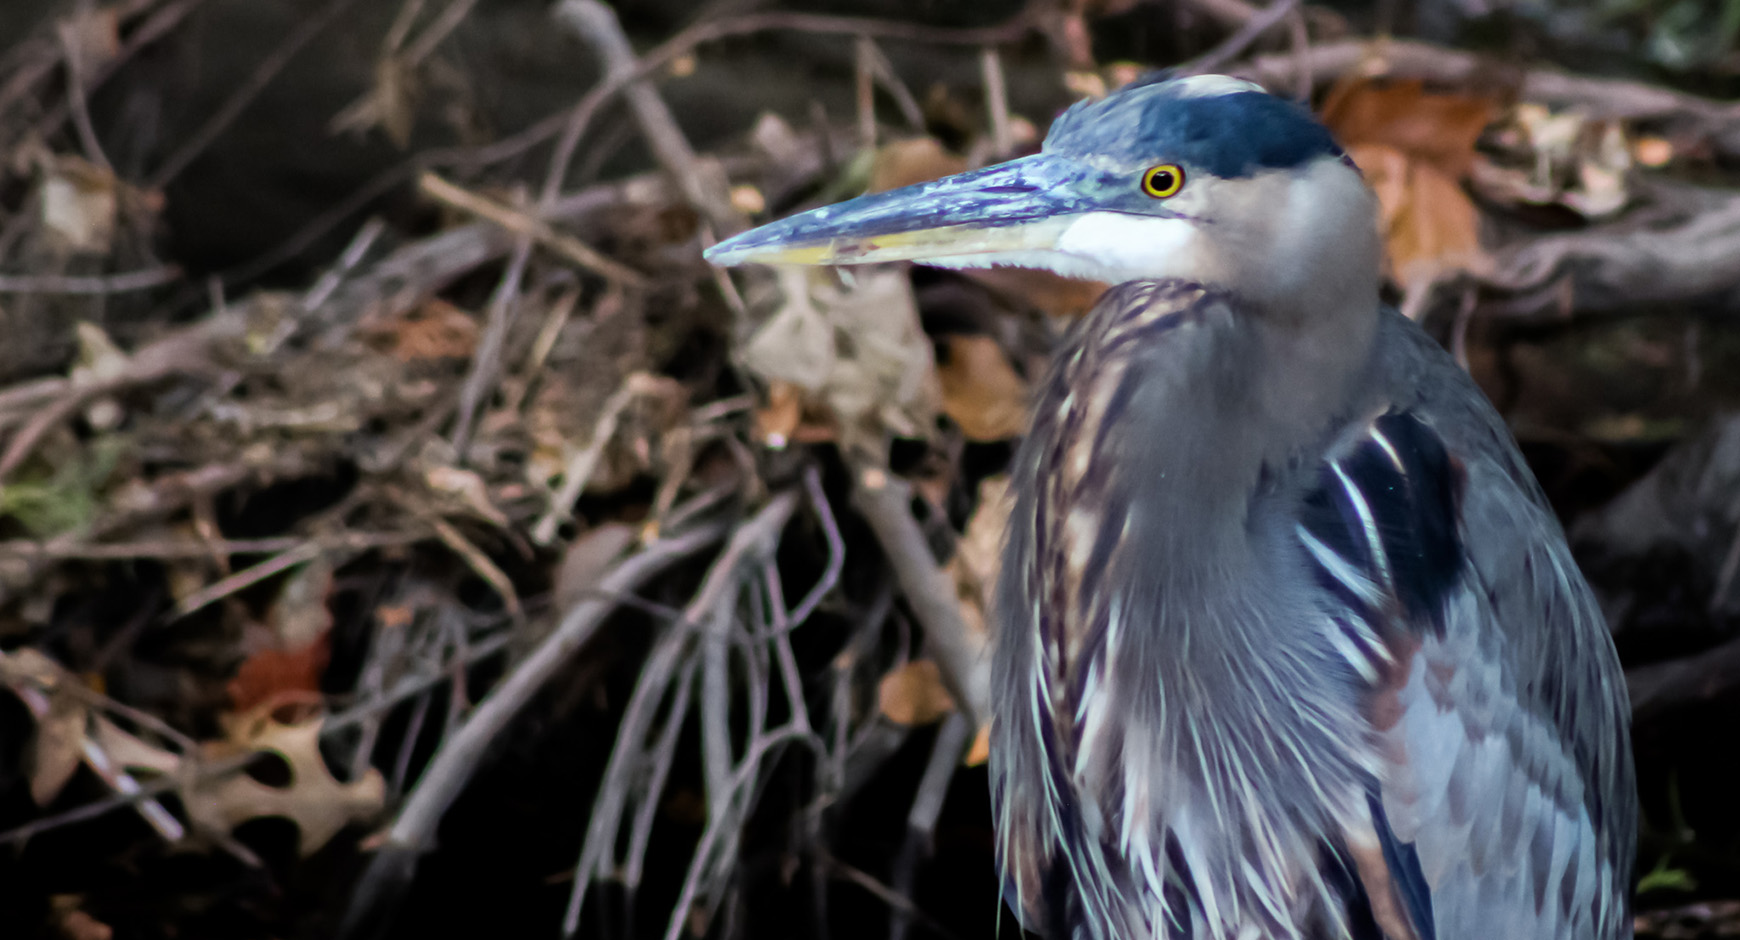 Great blue heron in Waller Creek